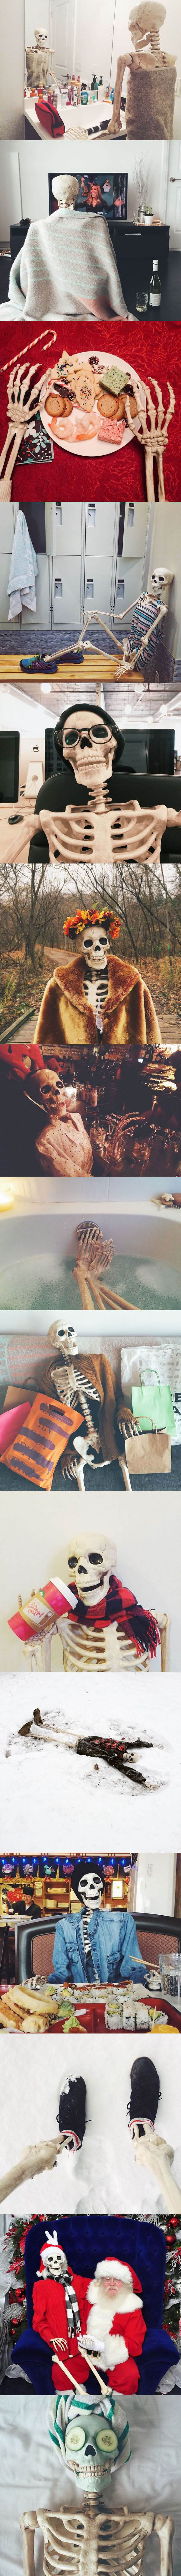 just your average girl on instagram these days, skeleton in various daily activities